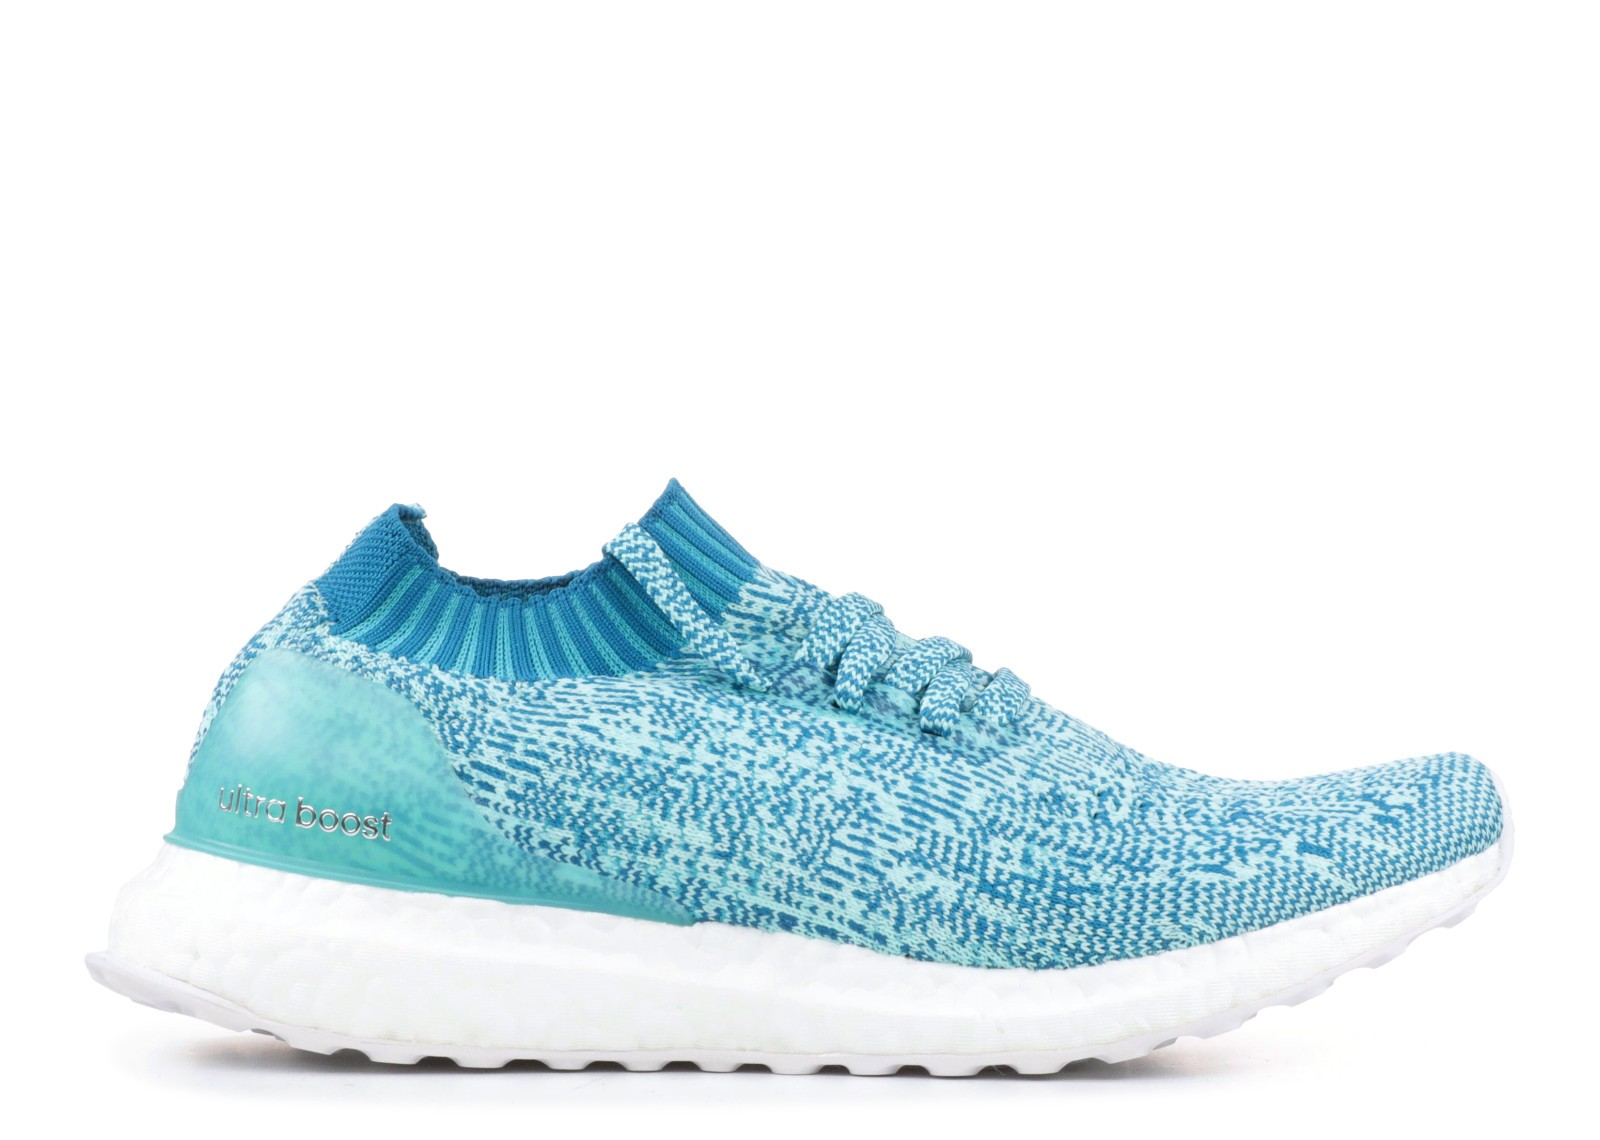 adidas Ultra Boost Uncaged Skor S80781 - Dam